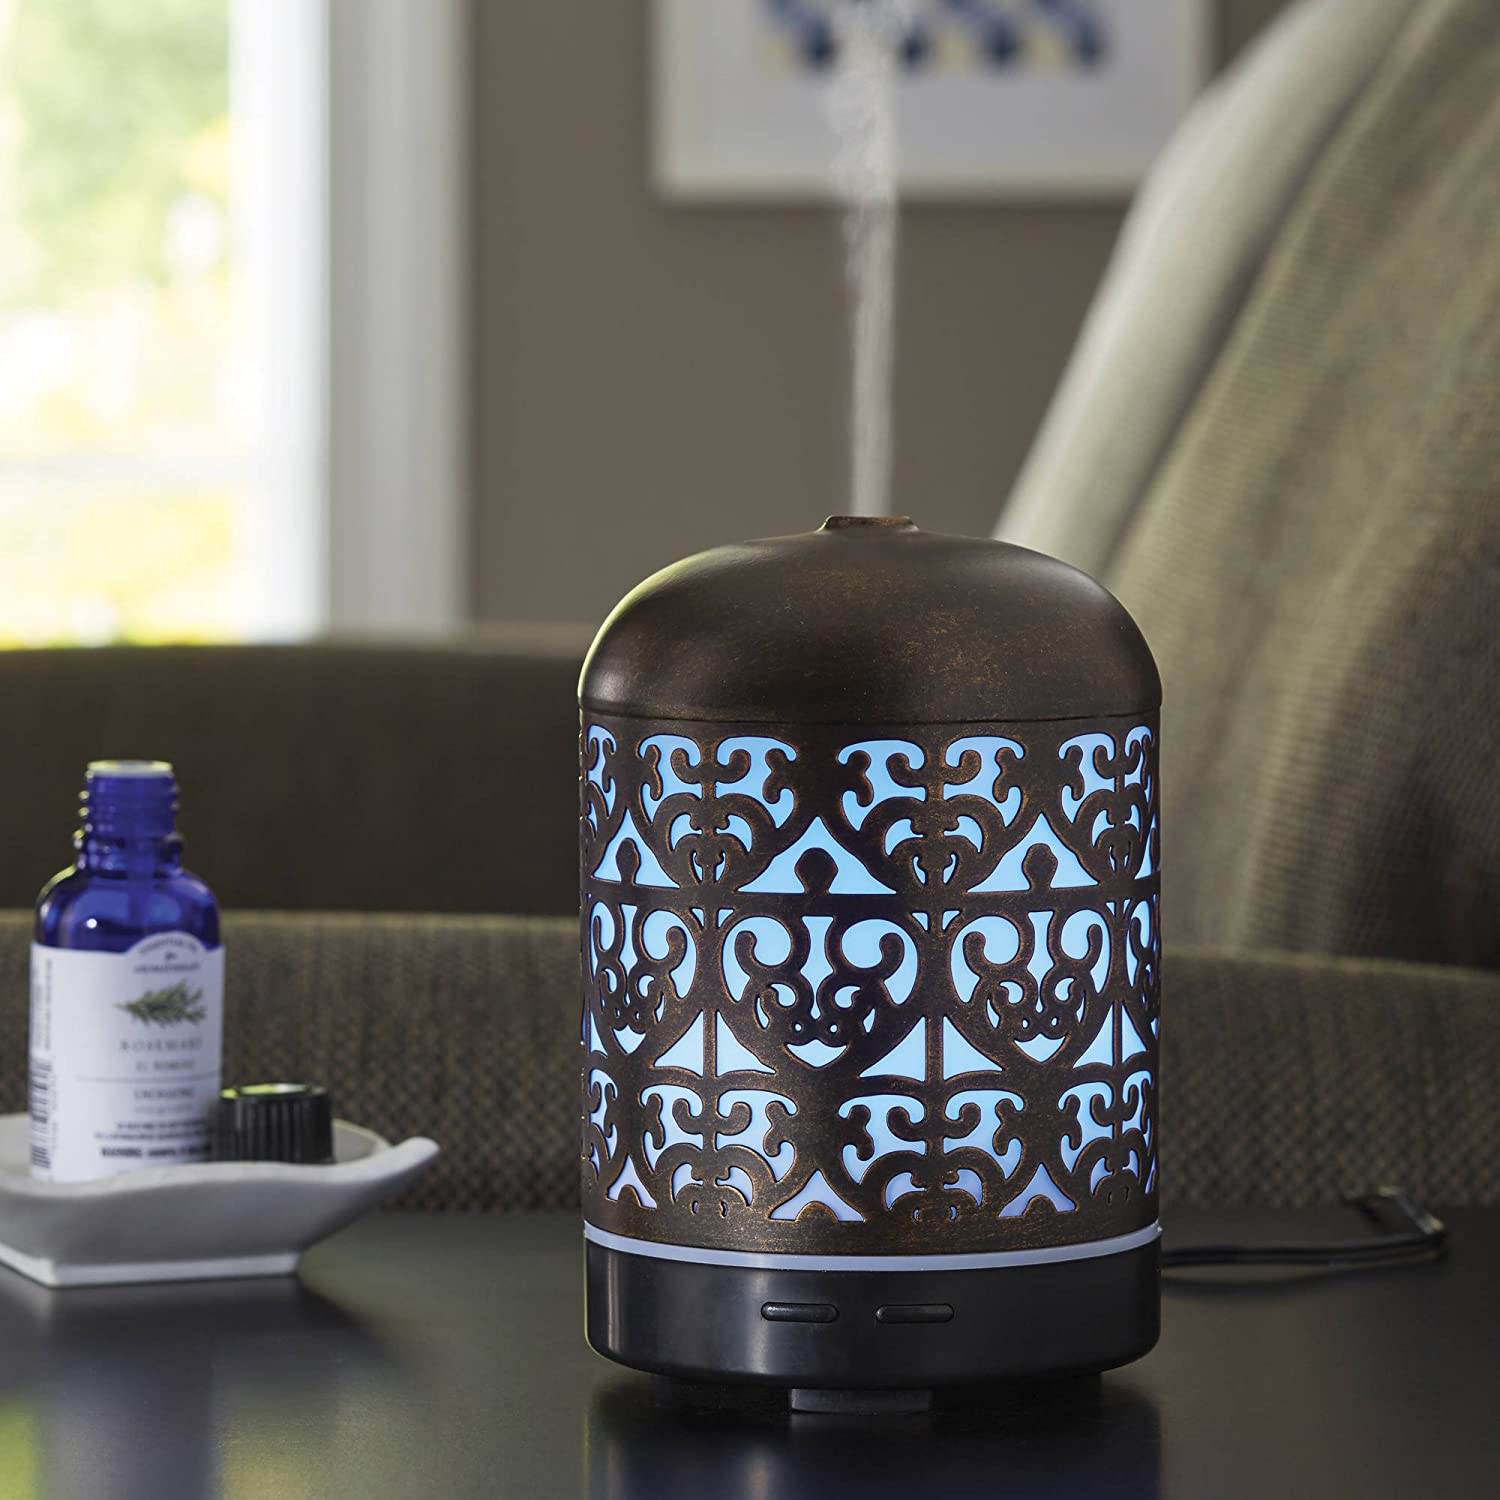 Better Homes and Gardens Essential Oil Diffuser, Moroccan Scroll